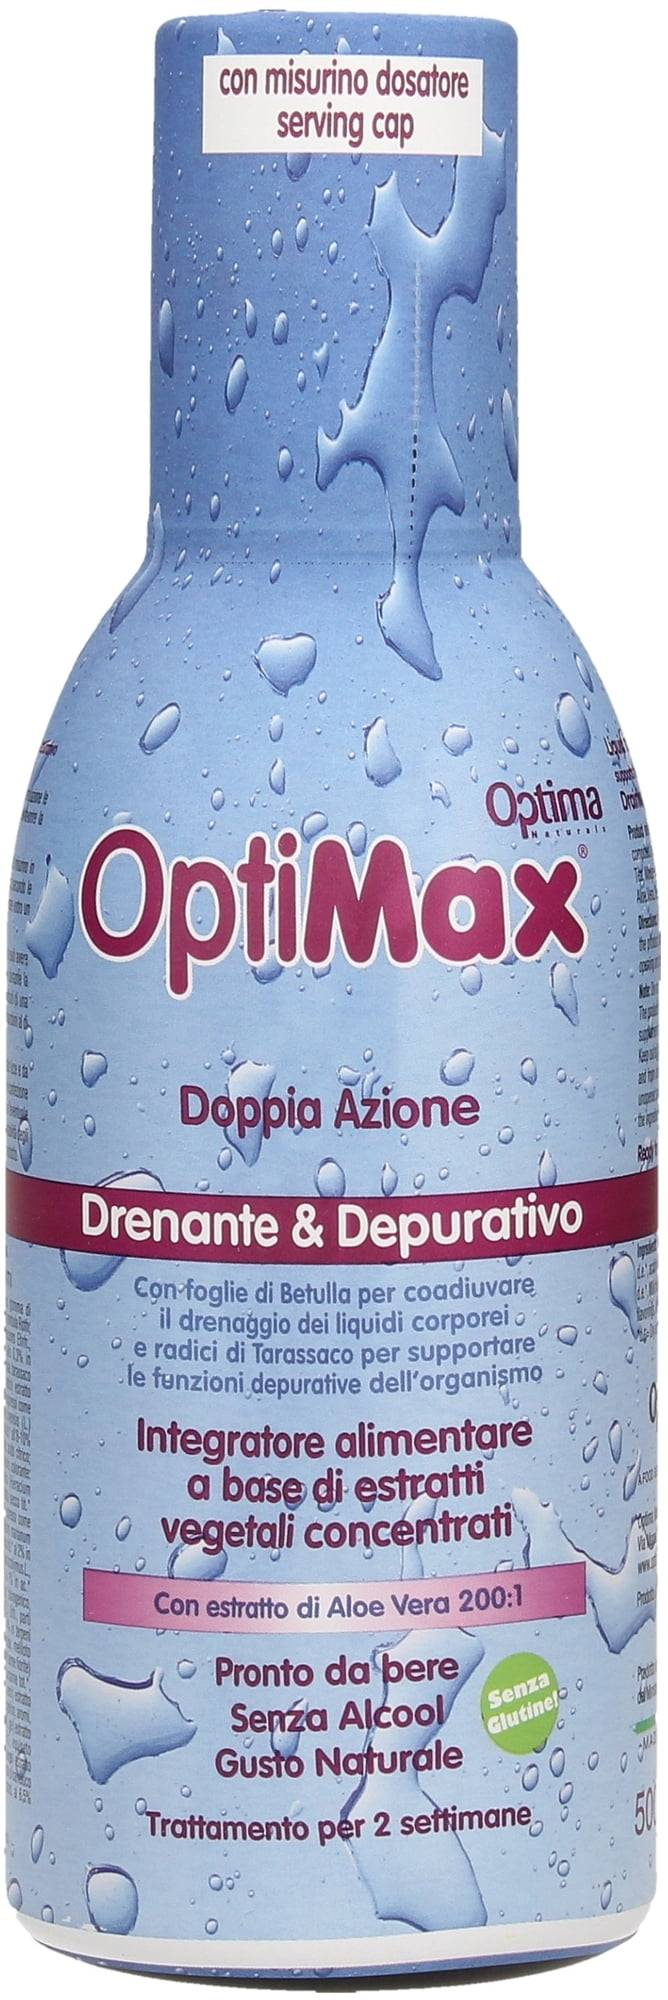 Optima Naturals Optimax Limpieza & Drenaje - 500 ml